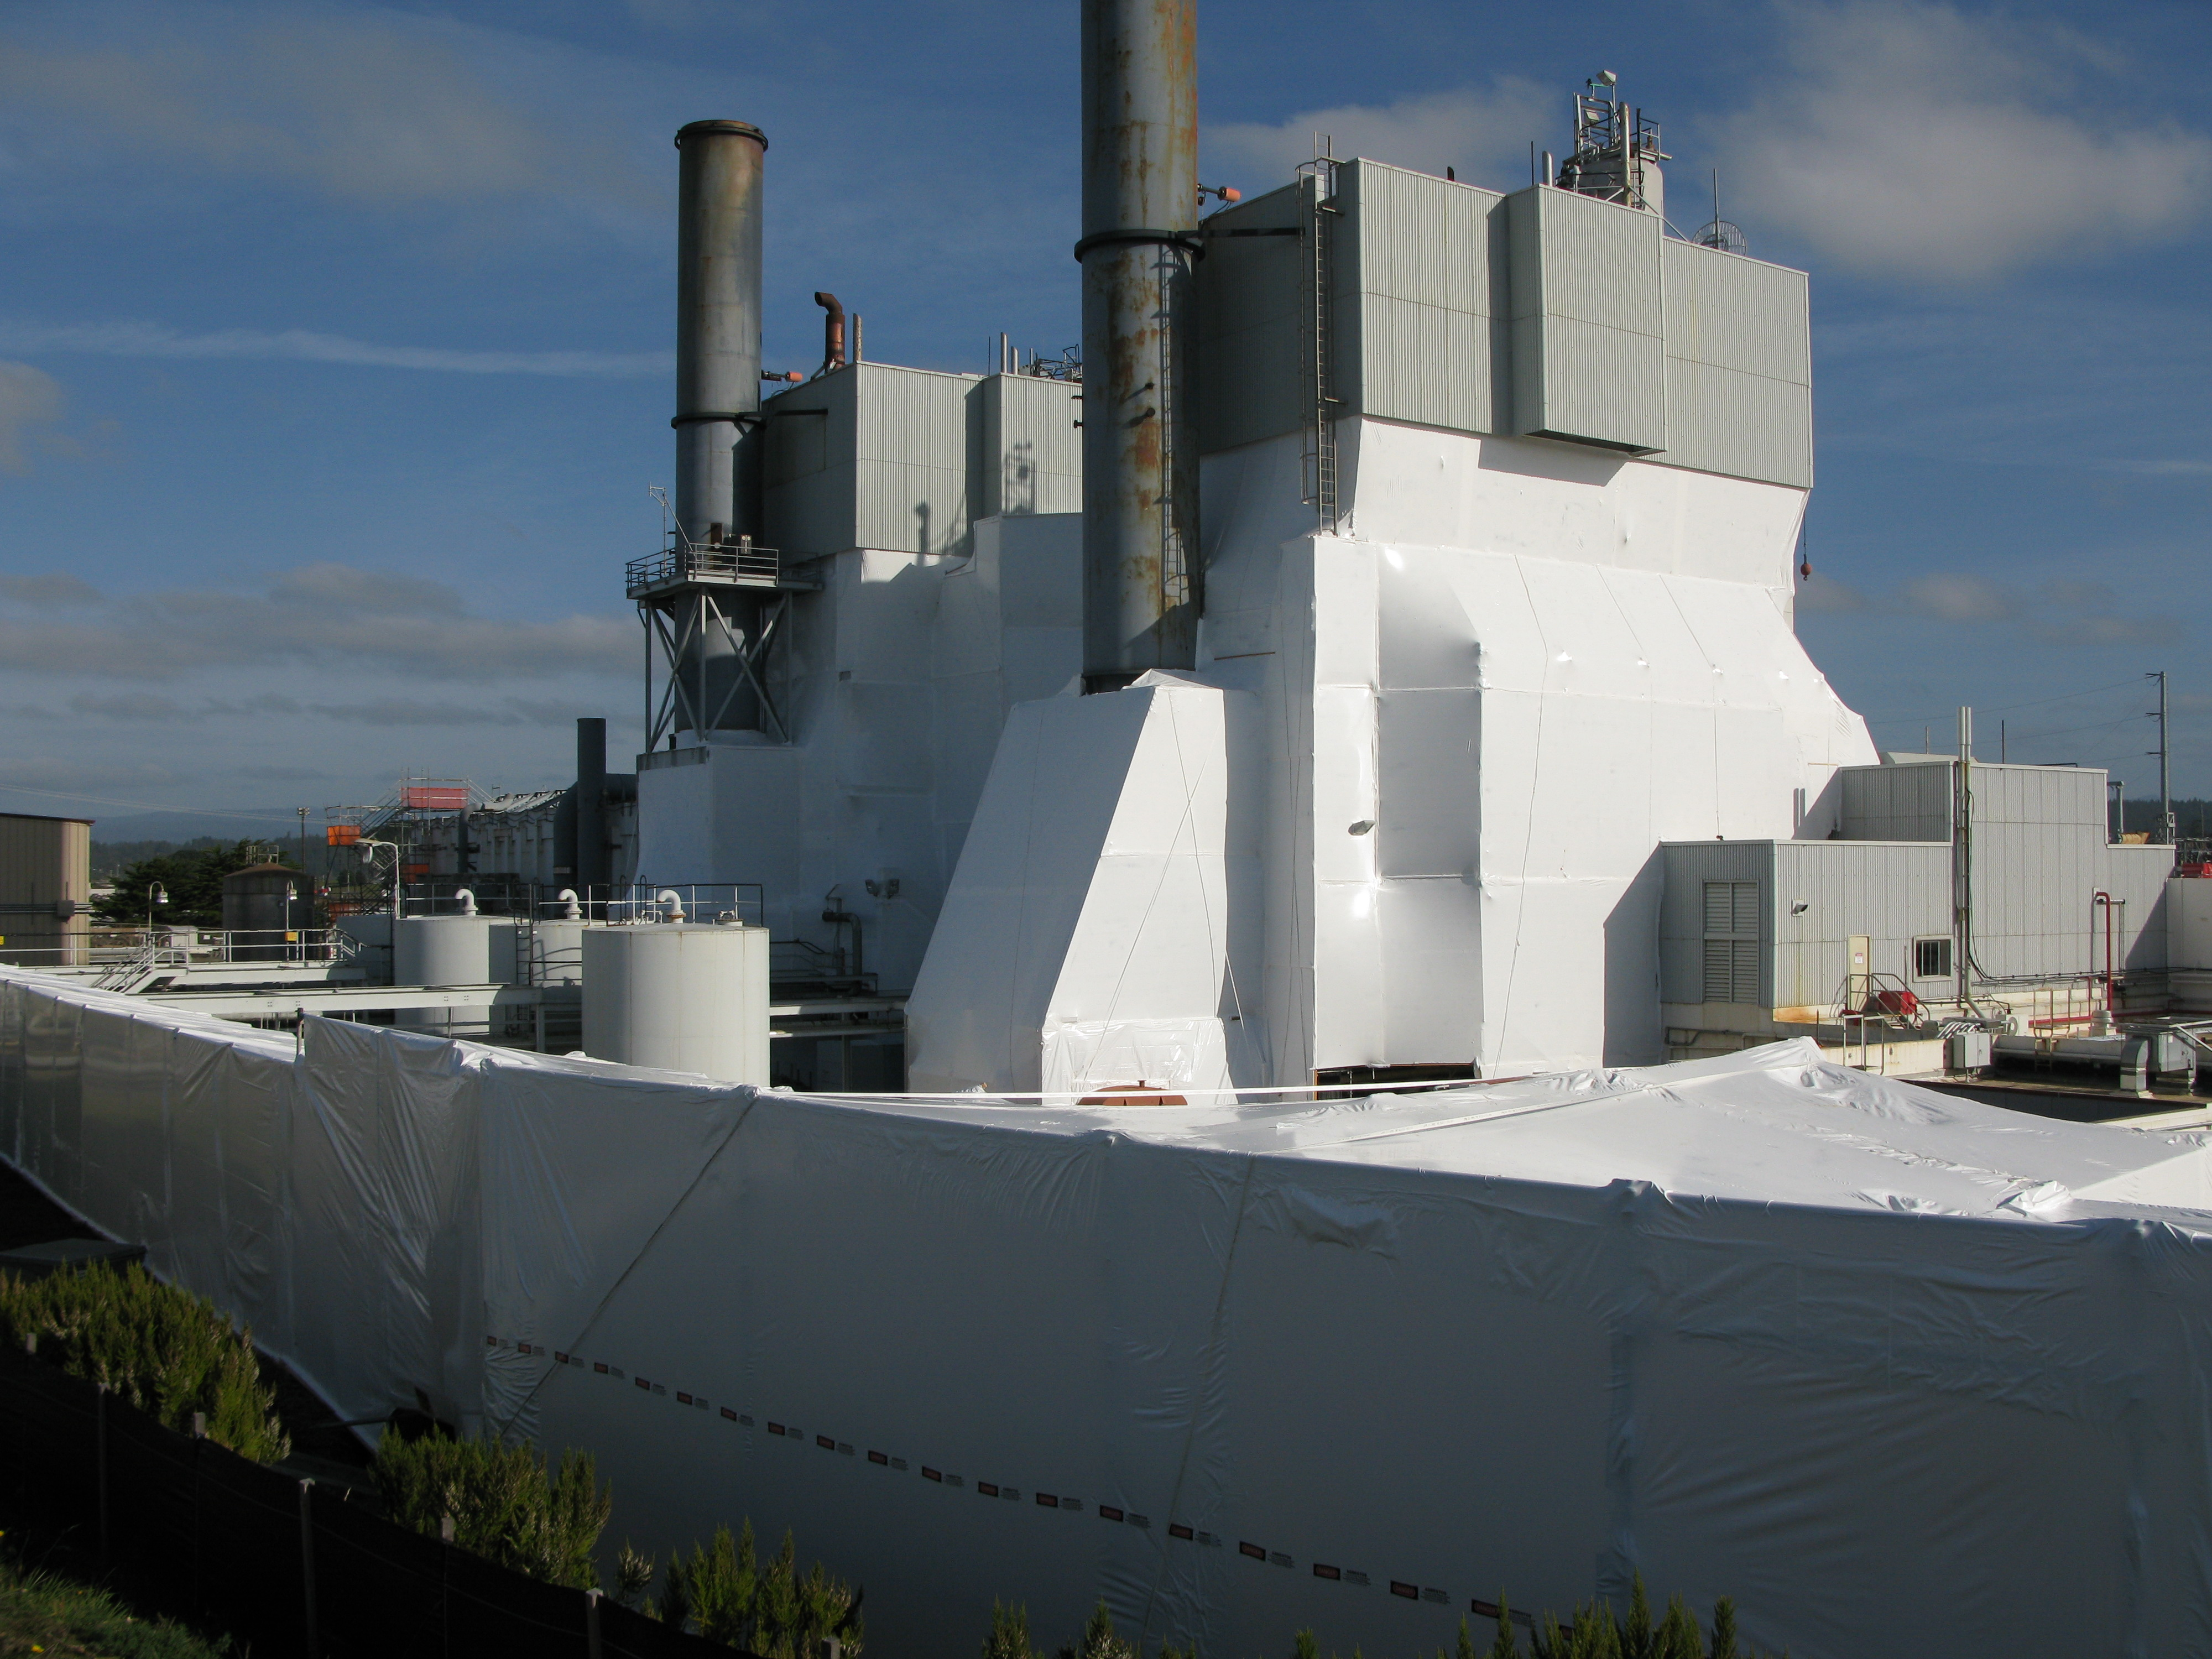 Humboldt Bay Power Plant - EcoBay Services, Inc.